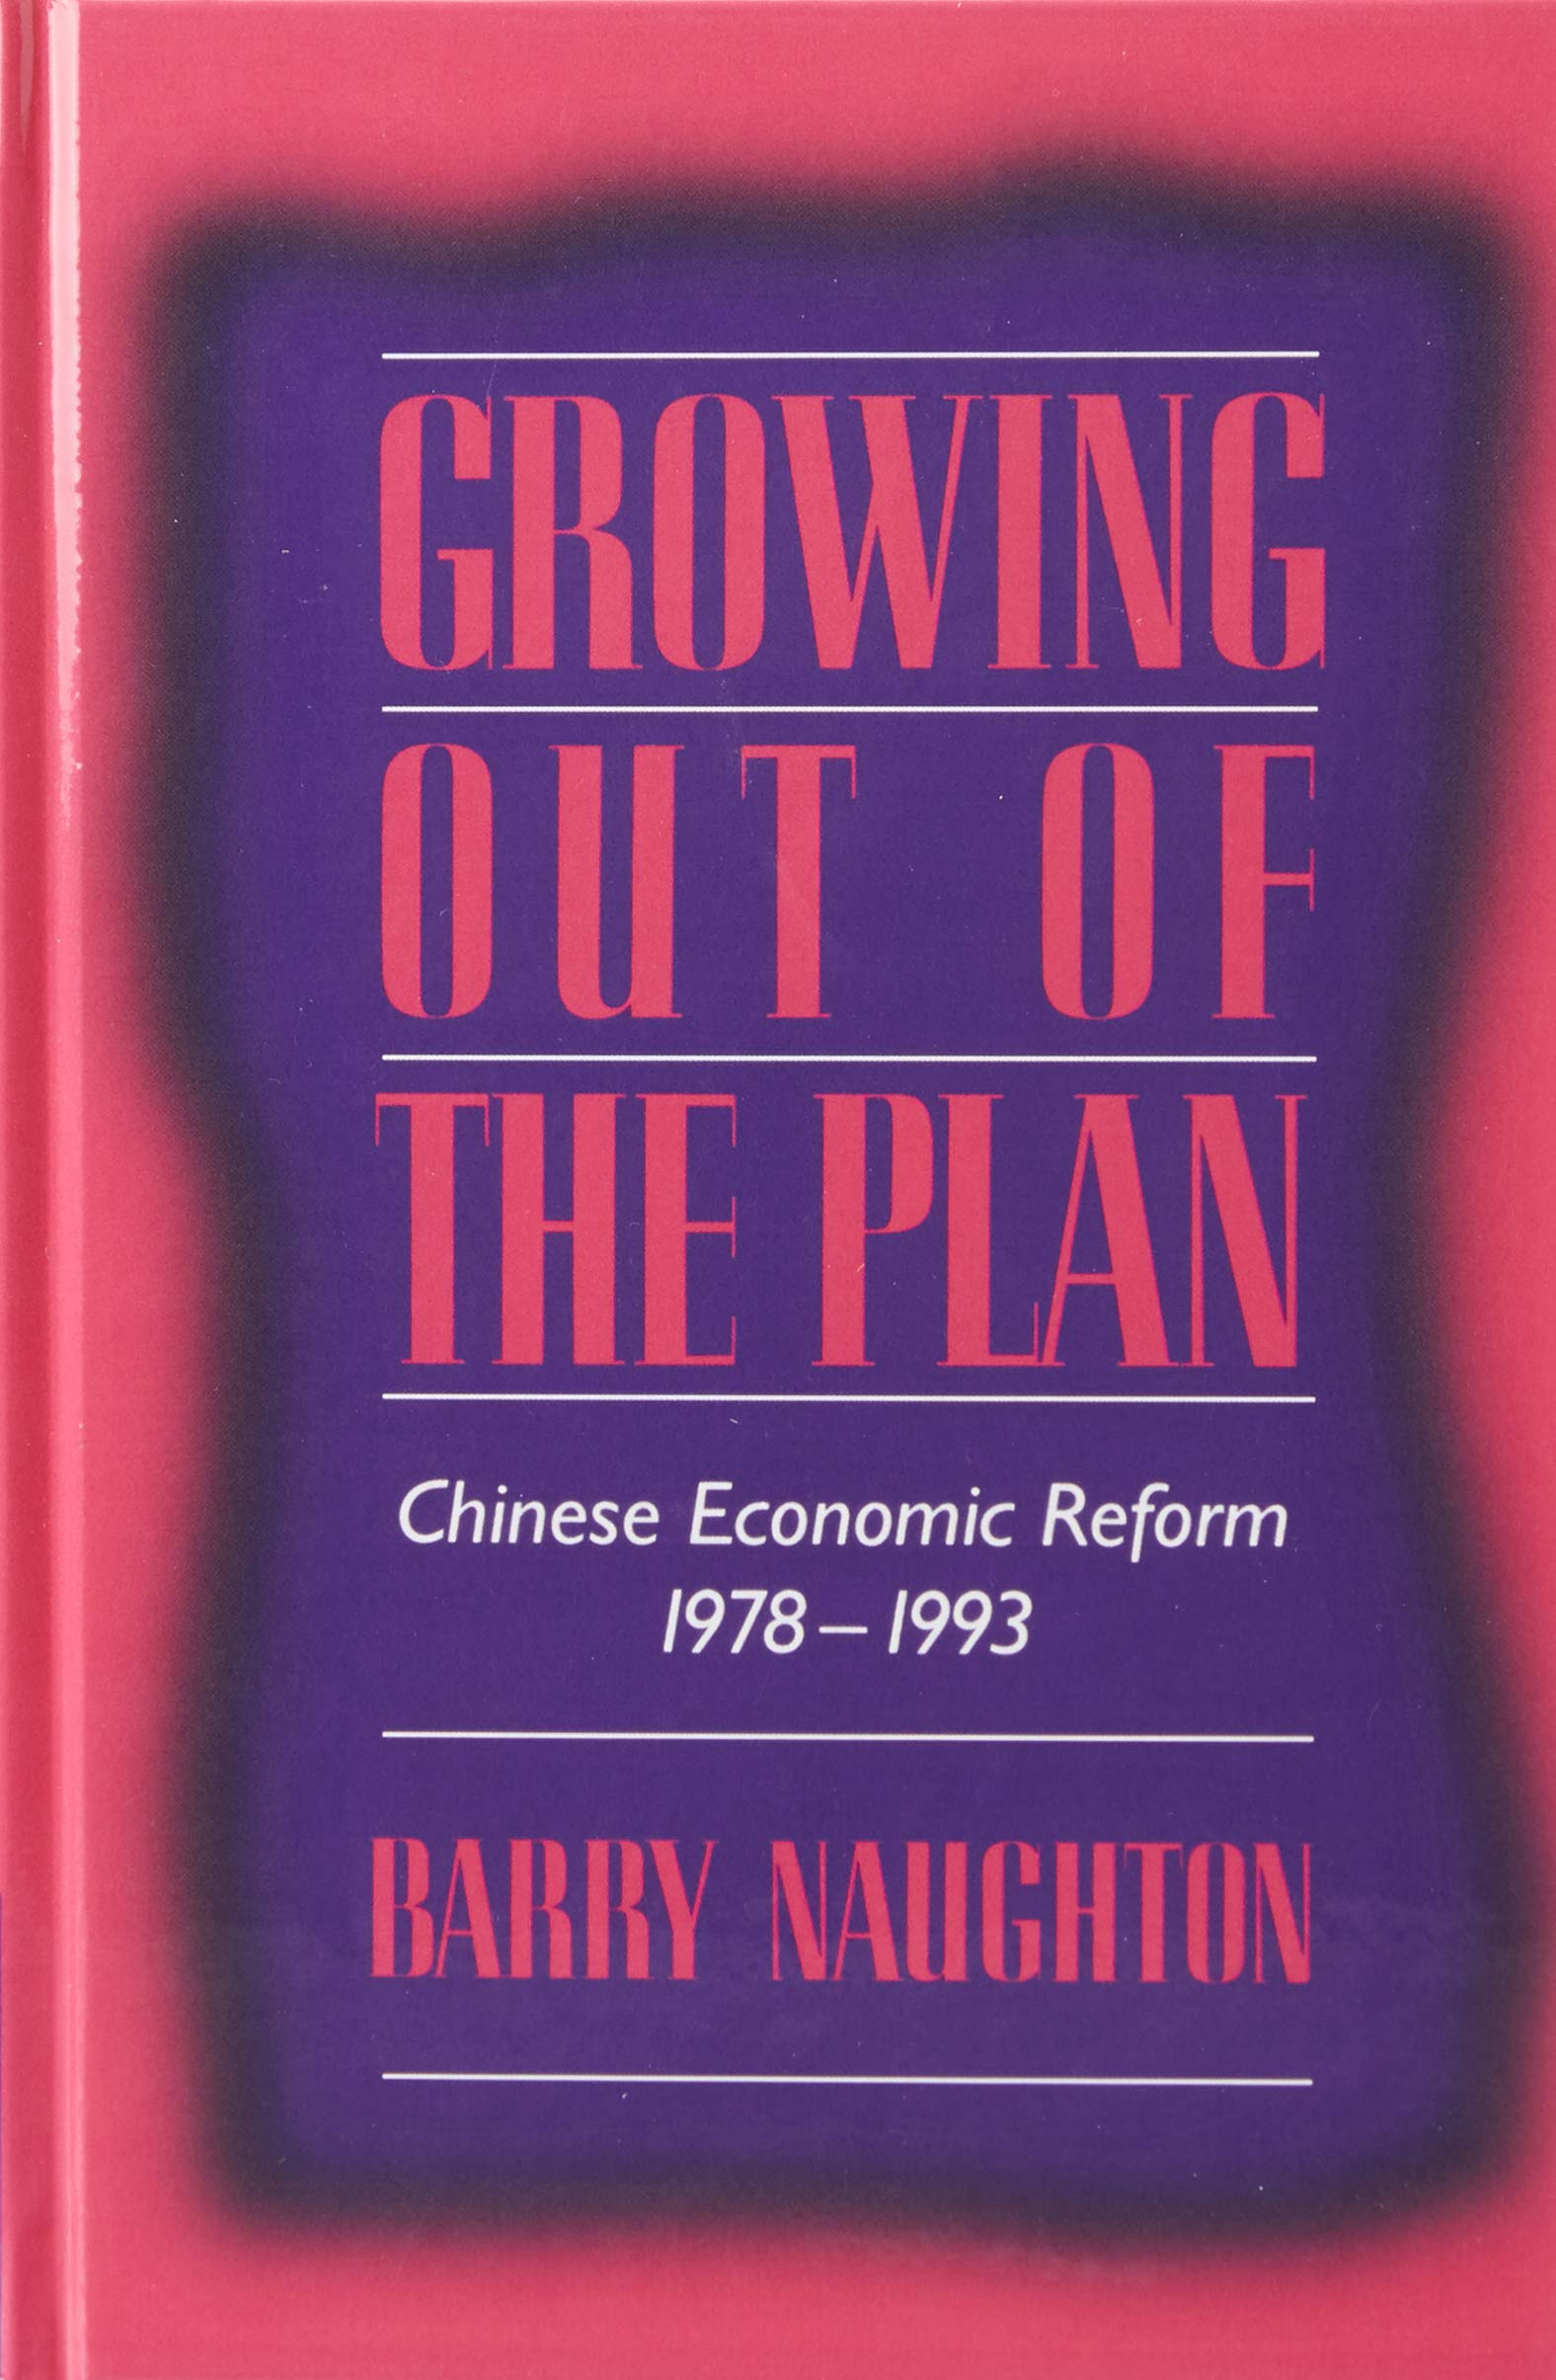 eb401046b0322 Growing Out of the Plan: Chinese Economic Reform, 1978-1993: Barry ...